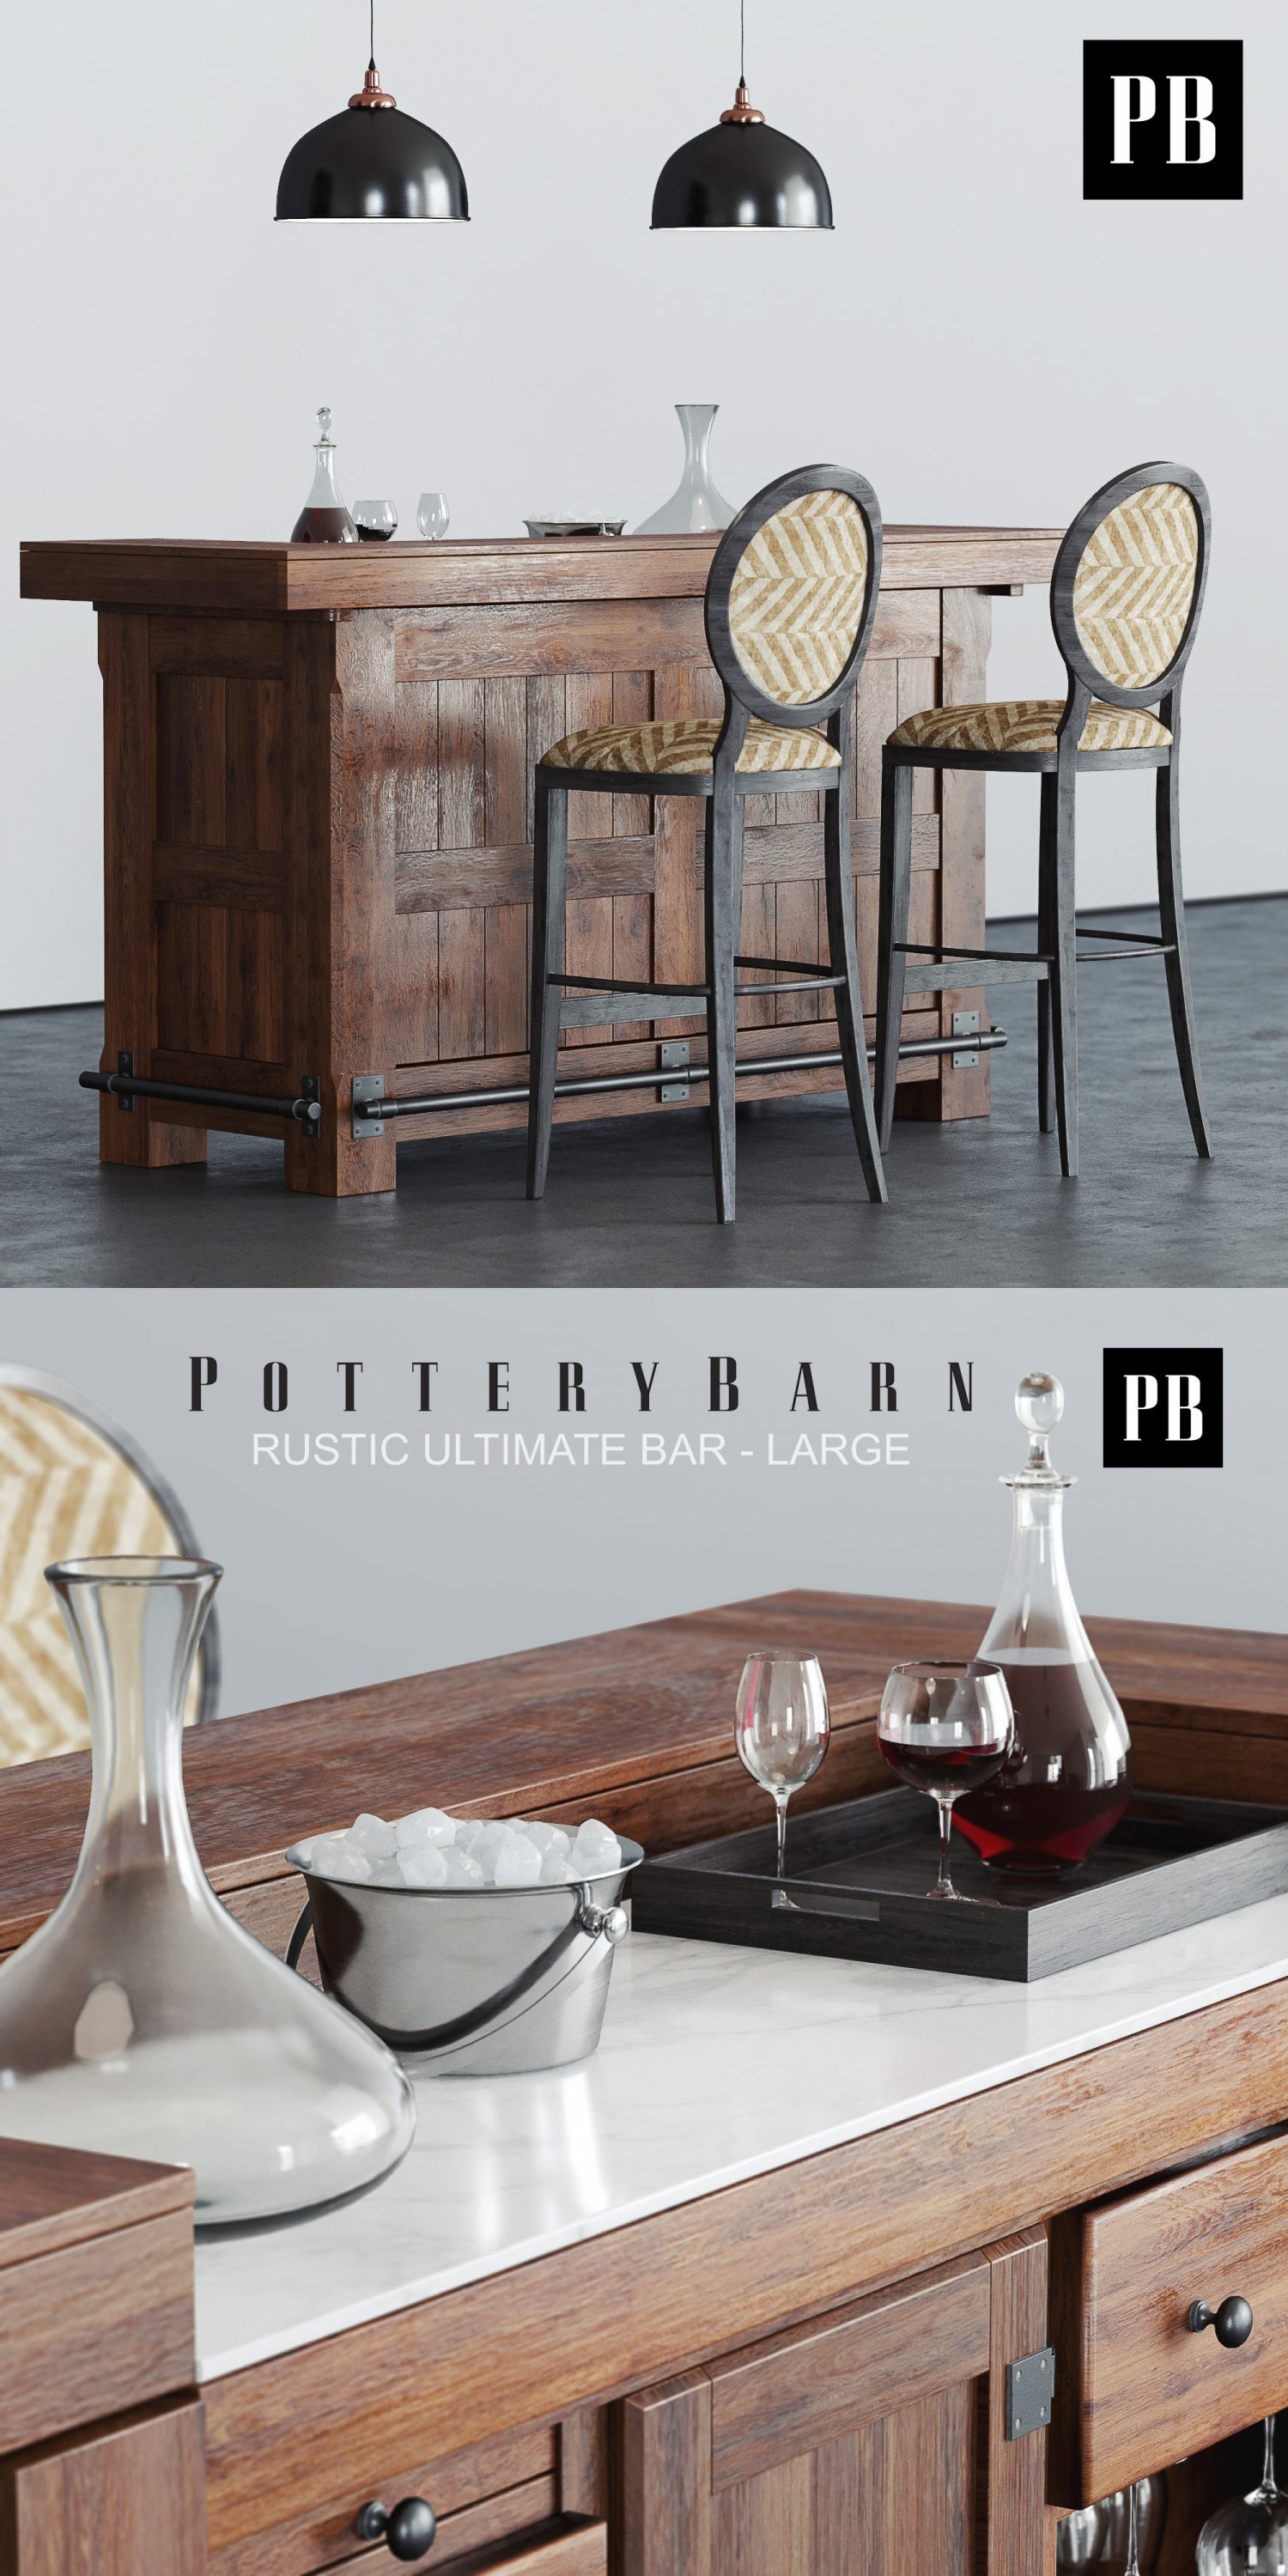 pottery barn rustic bar 3d model in set 3dexportpottery barn rustic bar remove bookmark bookmark this item